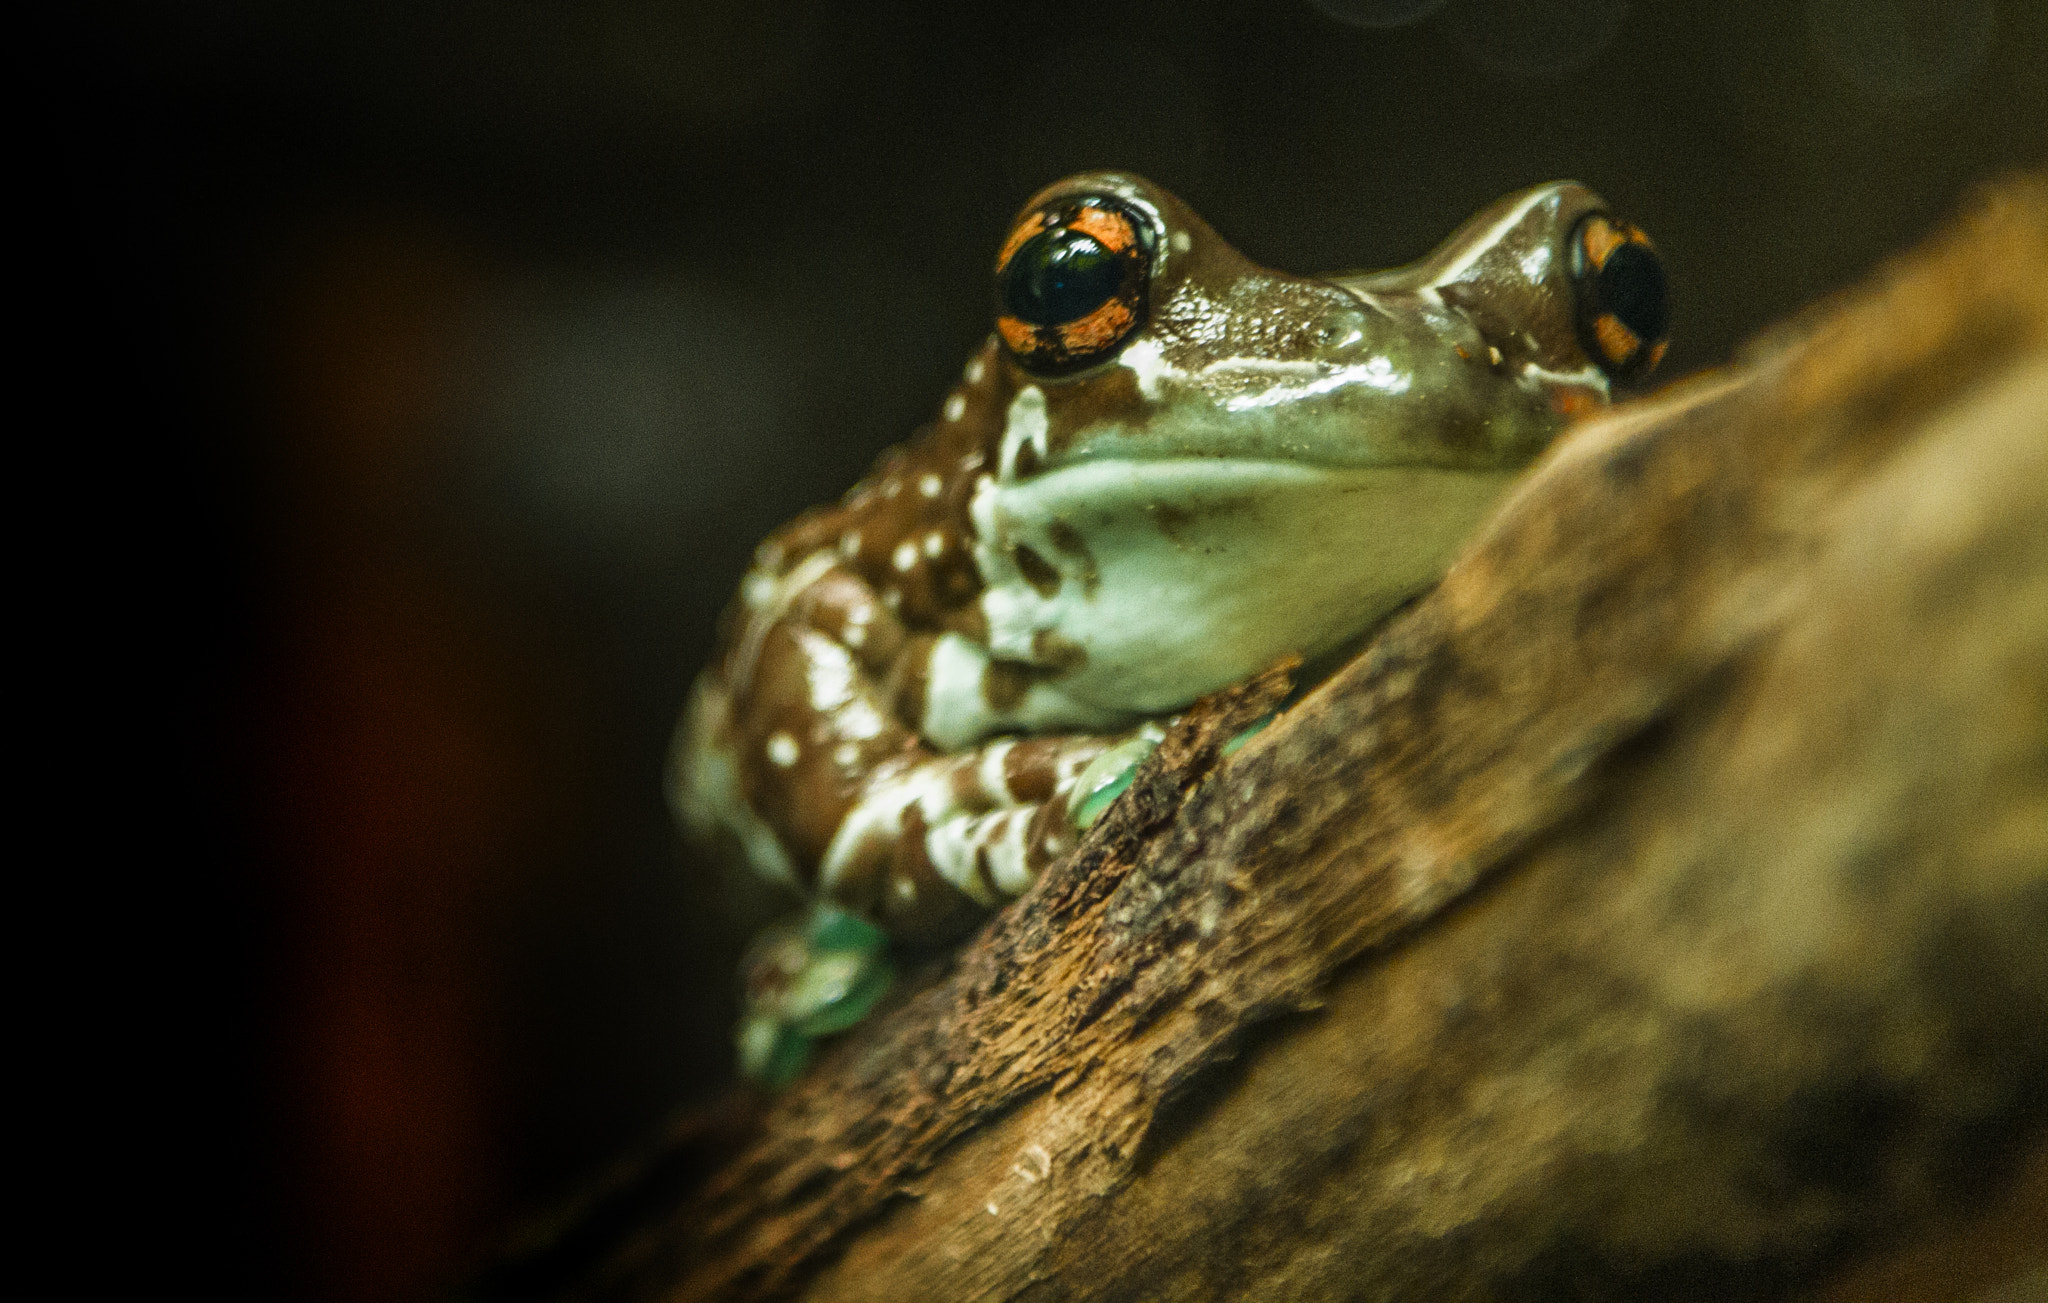 Photograph Frog by Steve Wood on 500px